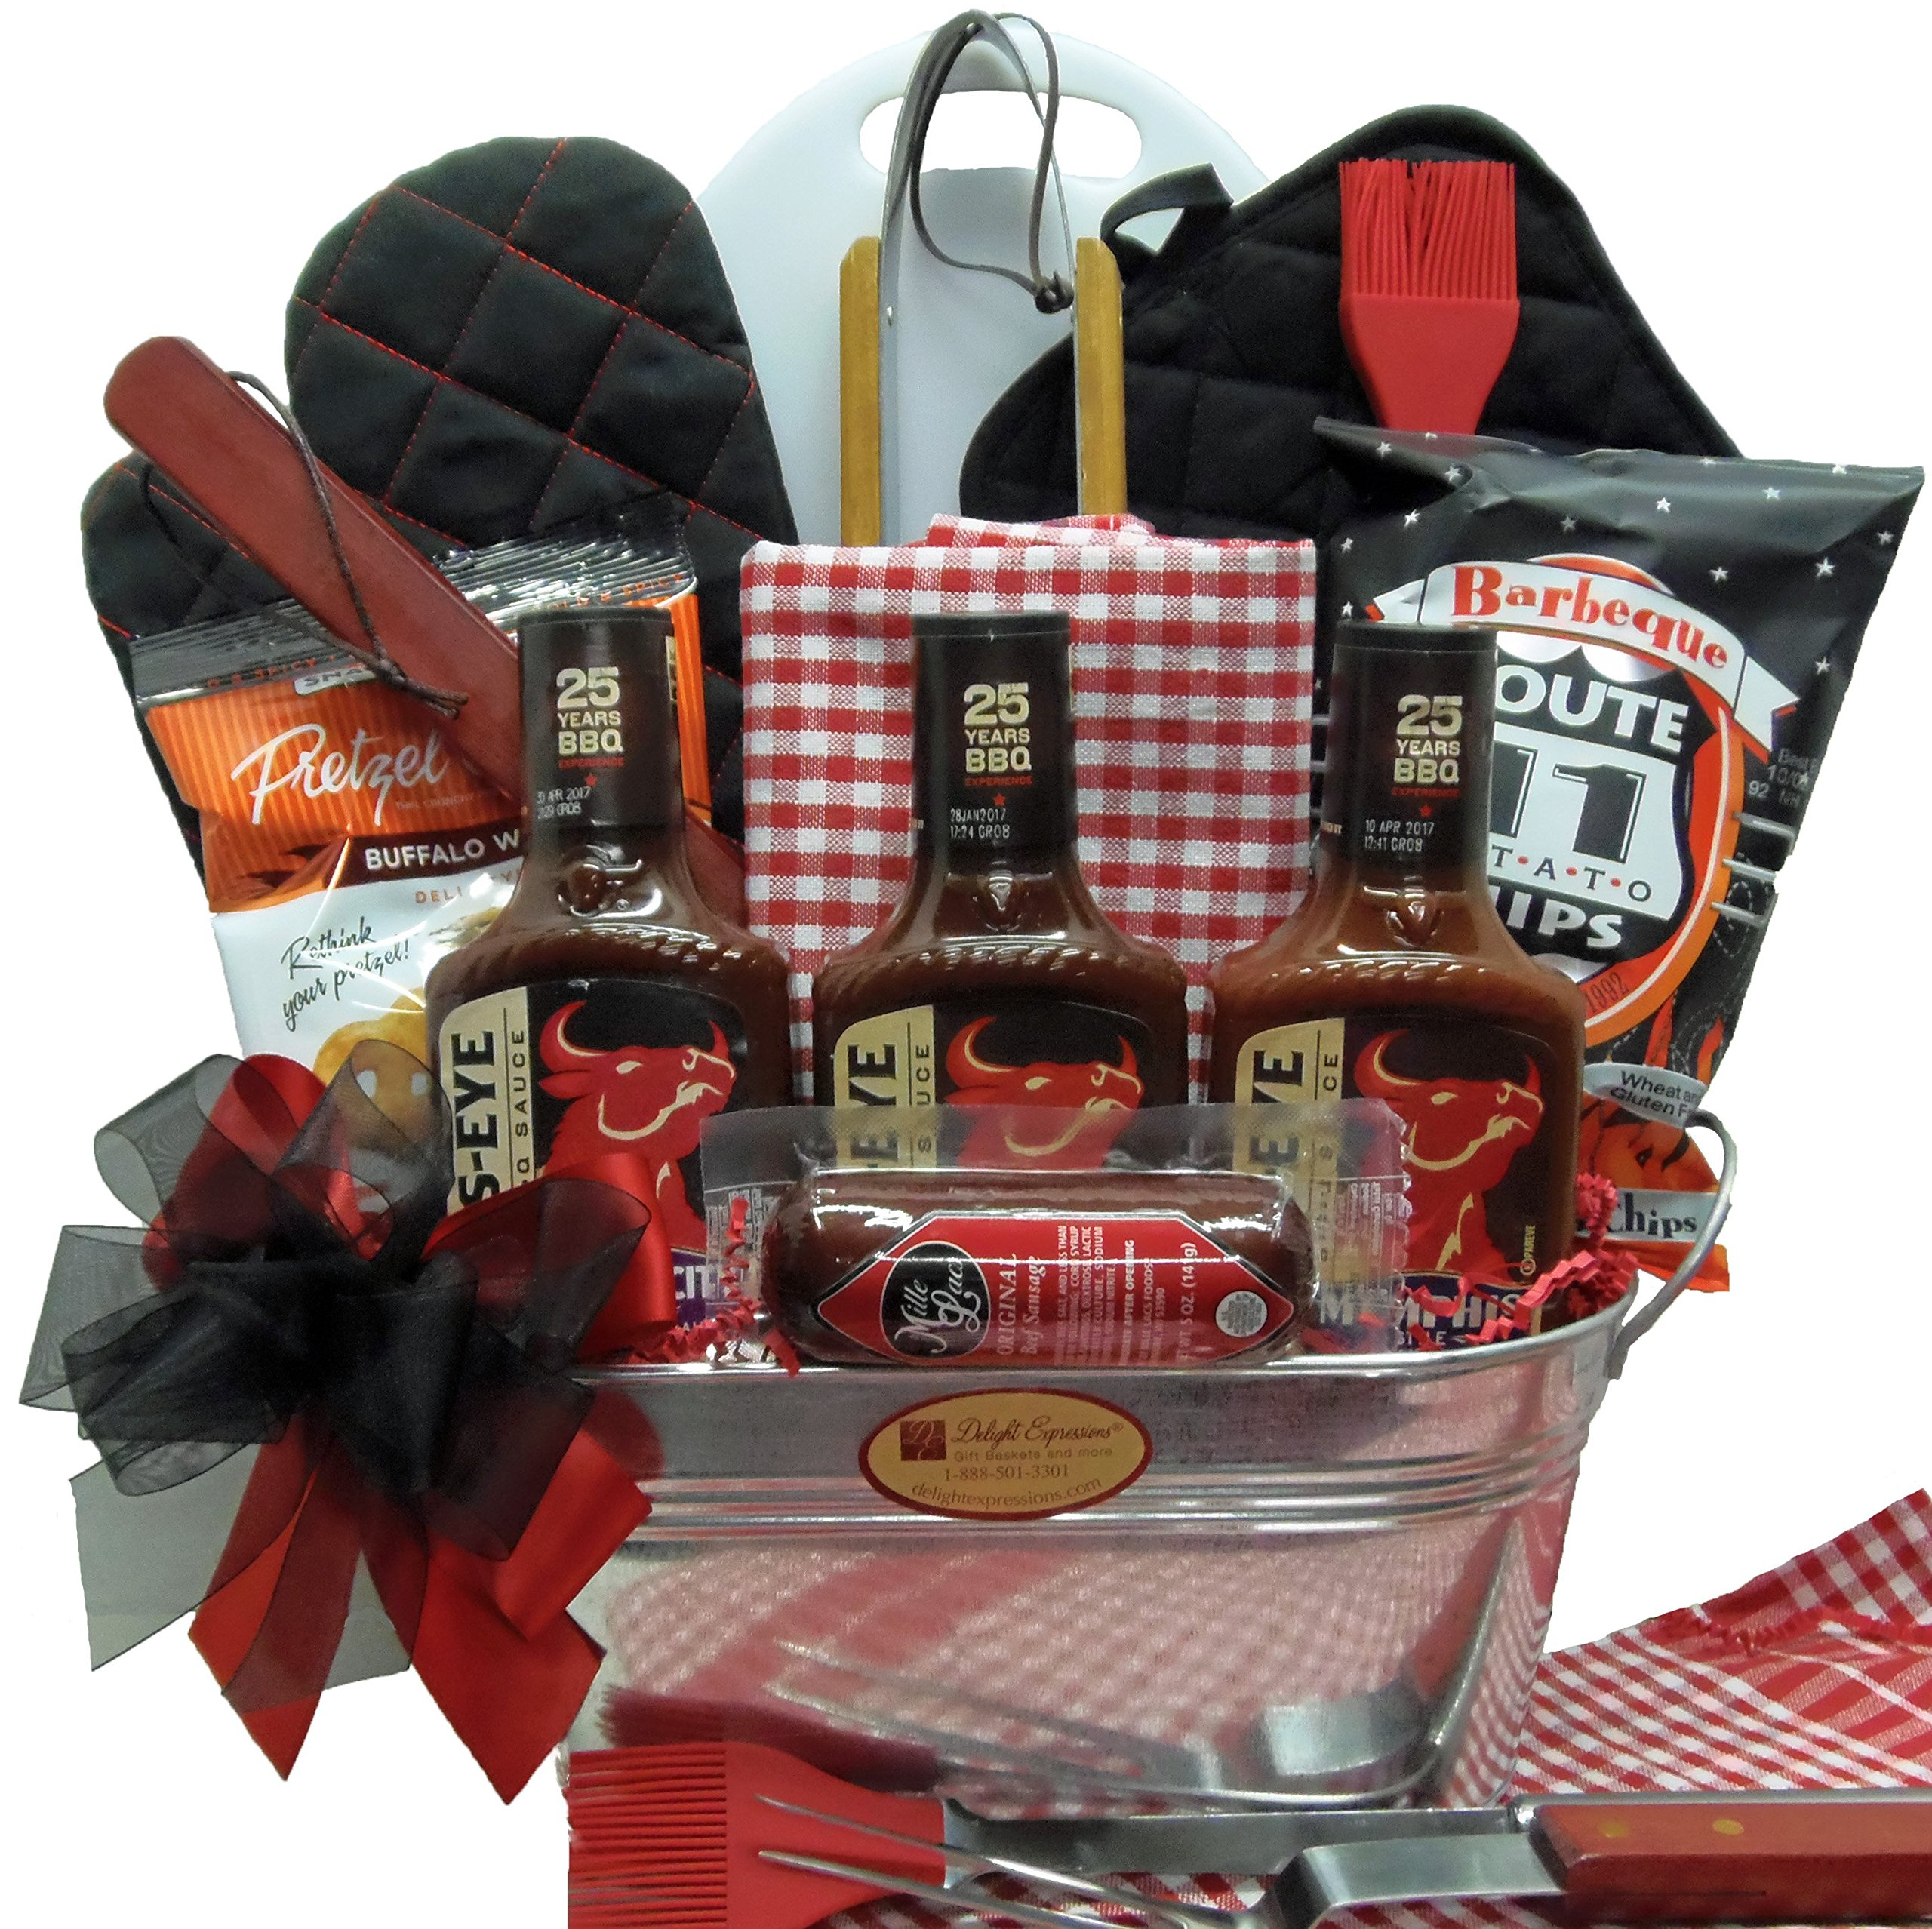 Delight Expressions Fire it Up BBQ Gift Basket - A Birthday or Get Well Gift Idea